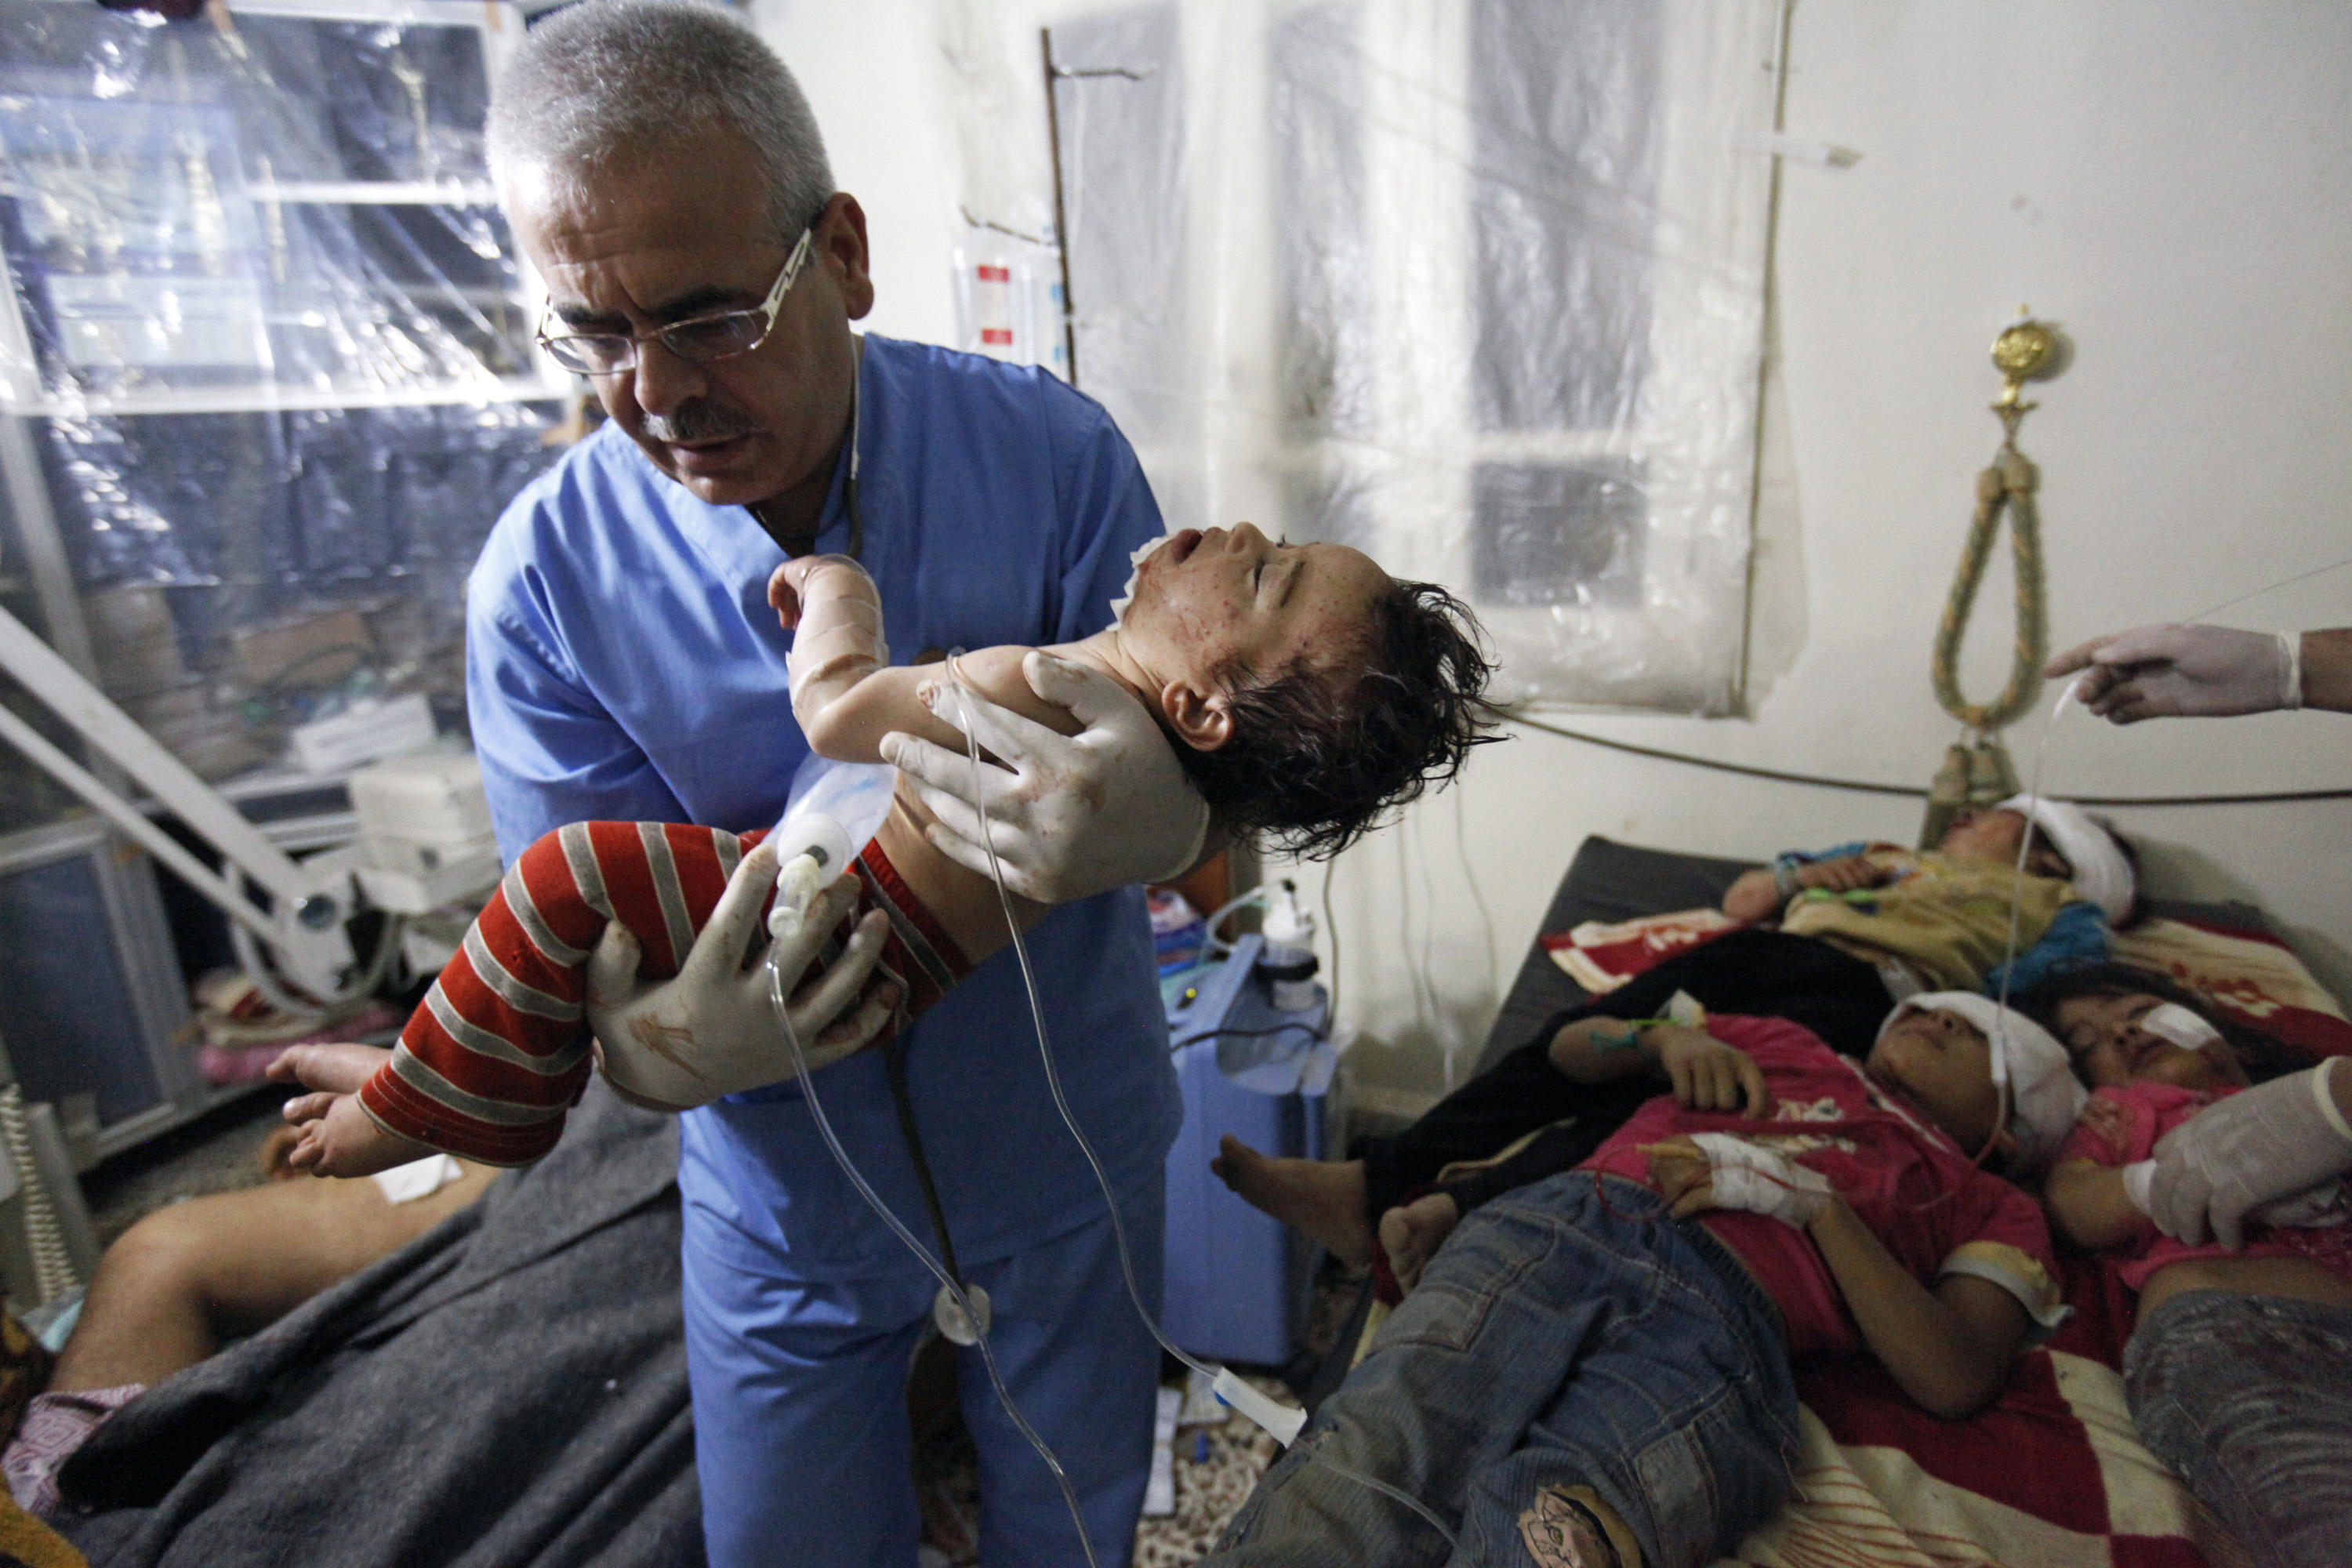 Robert King                                This image acts as a reminder of courage and strength, illustrated in the actions of the doctor. Dr. Kasem is a gastroenterologist who is labeled a terrorist by Assad's regime for honoring one of history's oldest binding documents, the Hippocratic oath, while treating six children wounded by heavy artillery and tank fire.